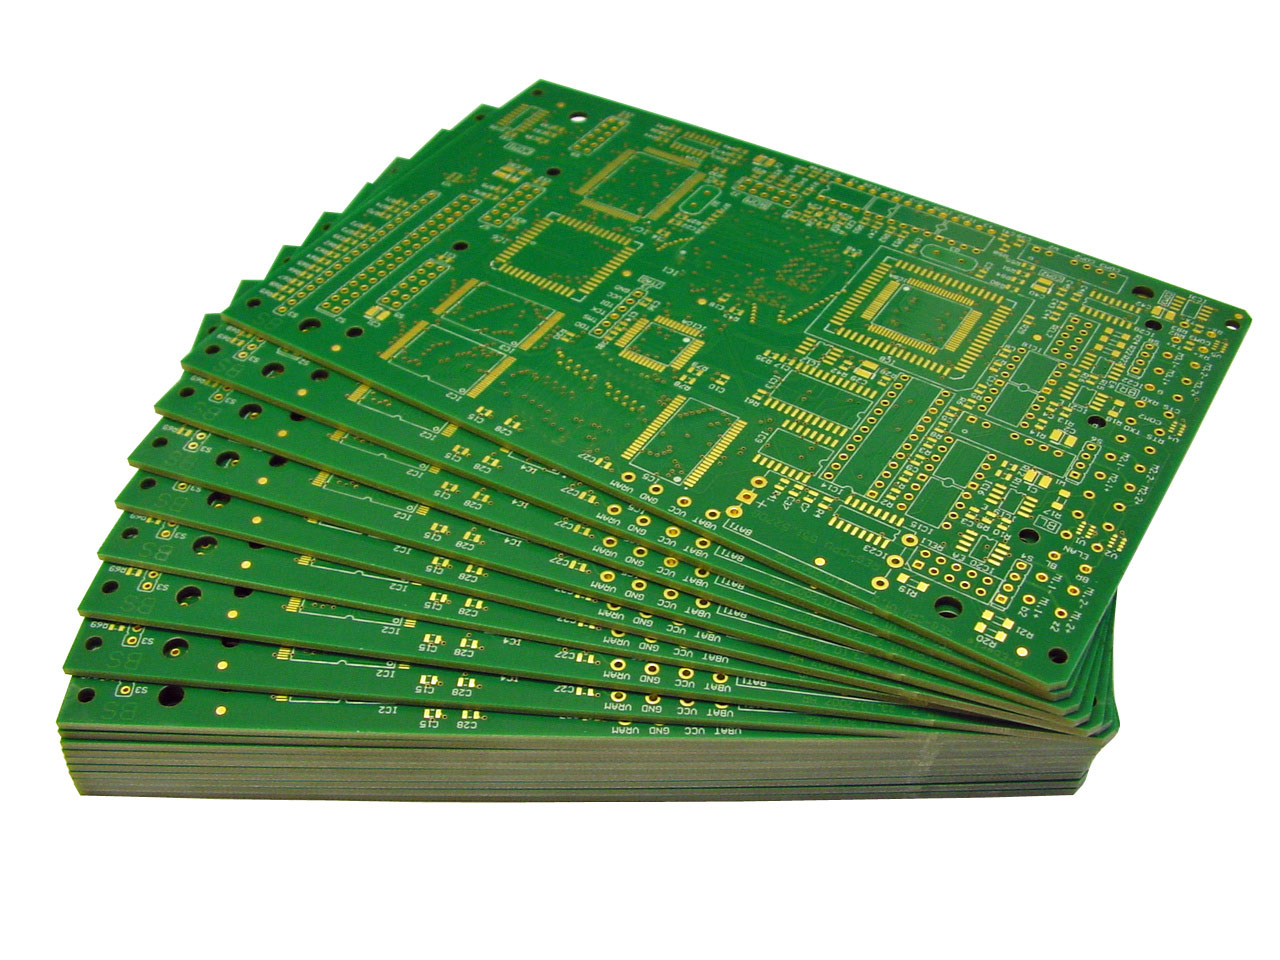 Printed Circuit Board Pricing Multi Boards Production Buy Pcb Boardpcb Calculate Online